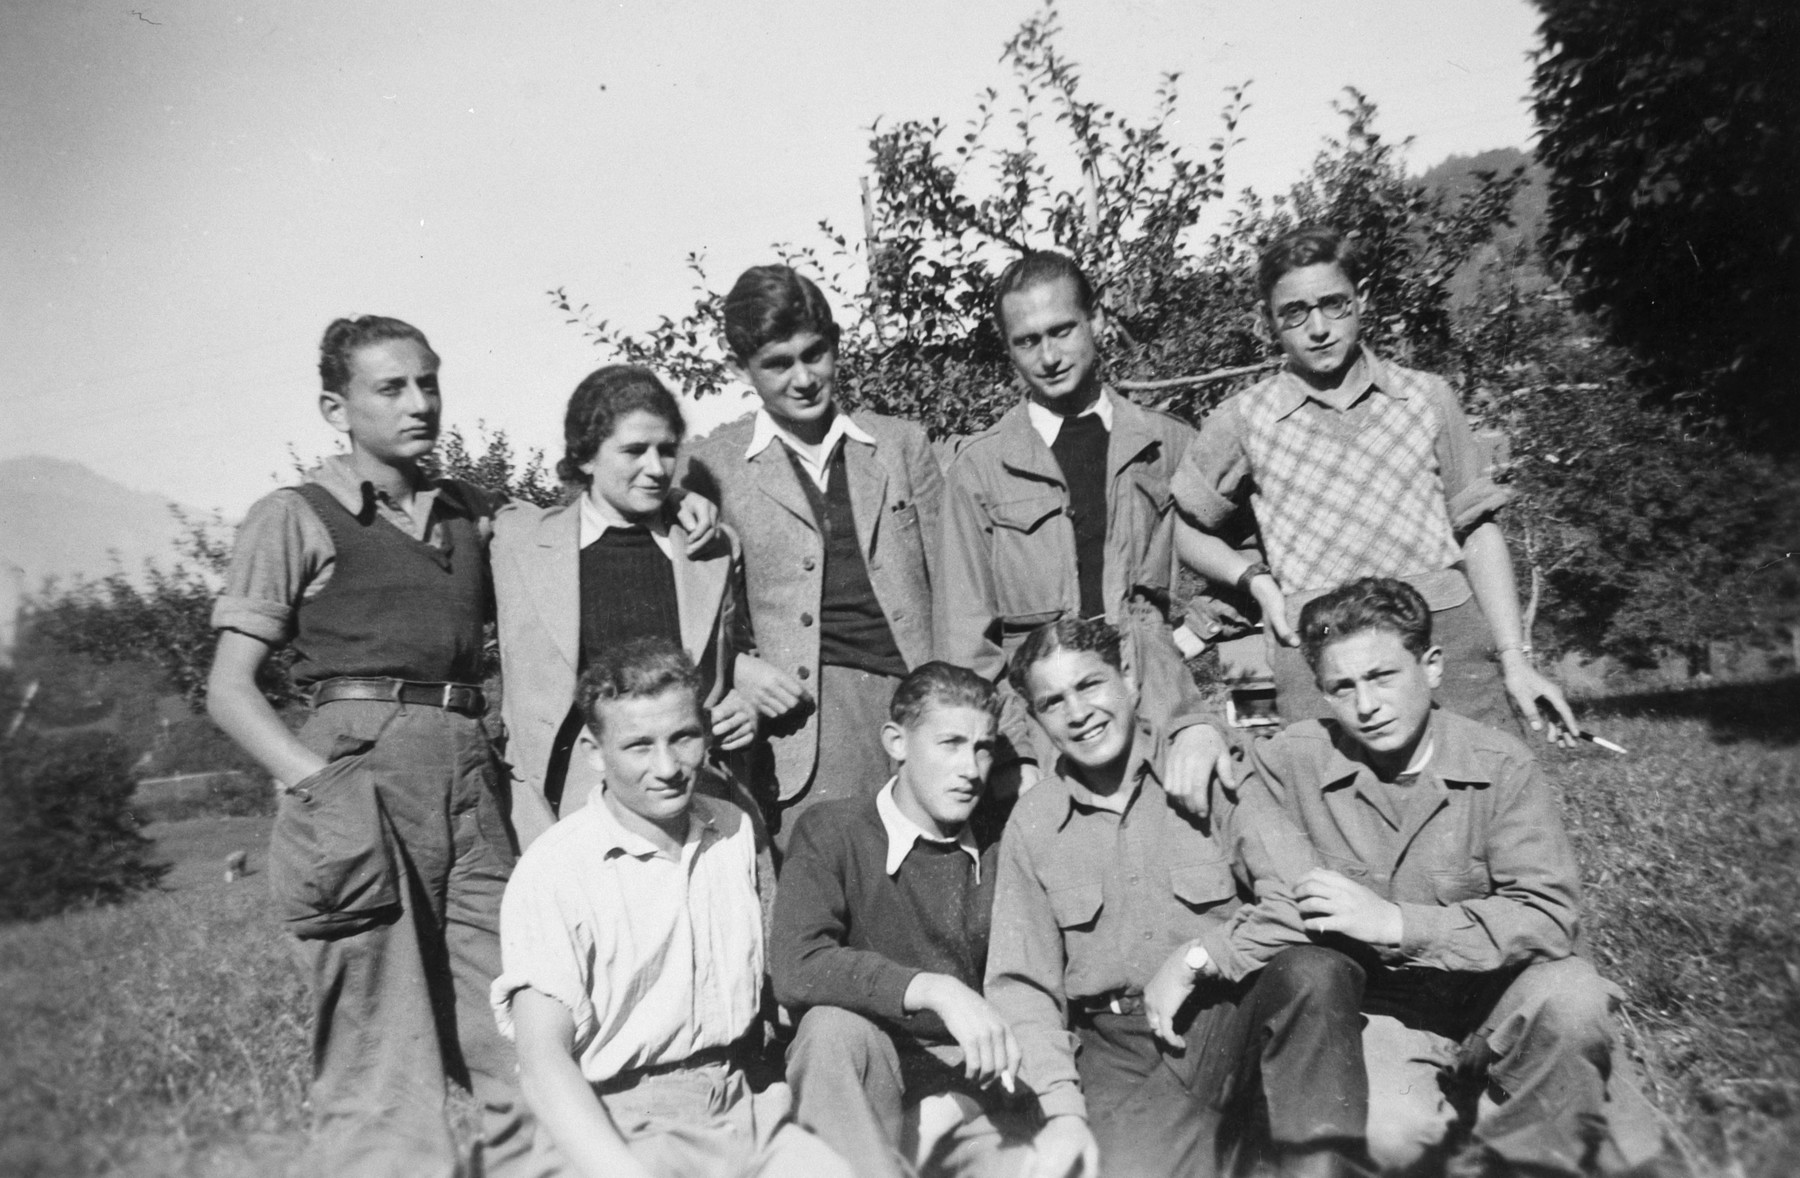 Group portrait of Jewish youth in a children's home in Switzerland.  Moniek Szmulewicz is pictured in the front row, second from the right.  Michael Rosenberg is standing, second row middle.